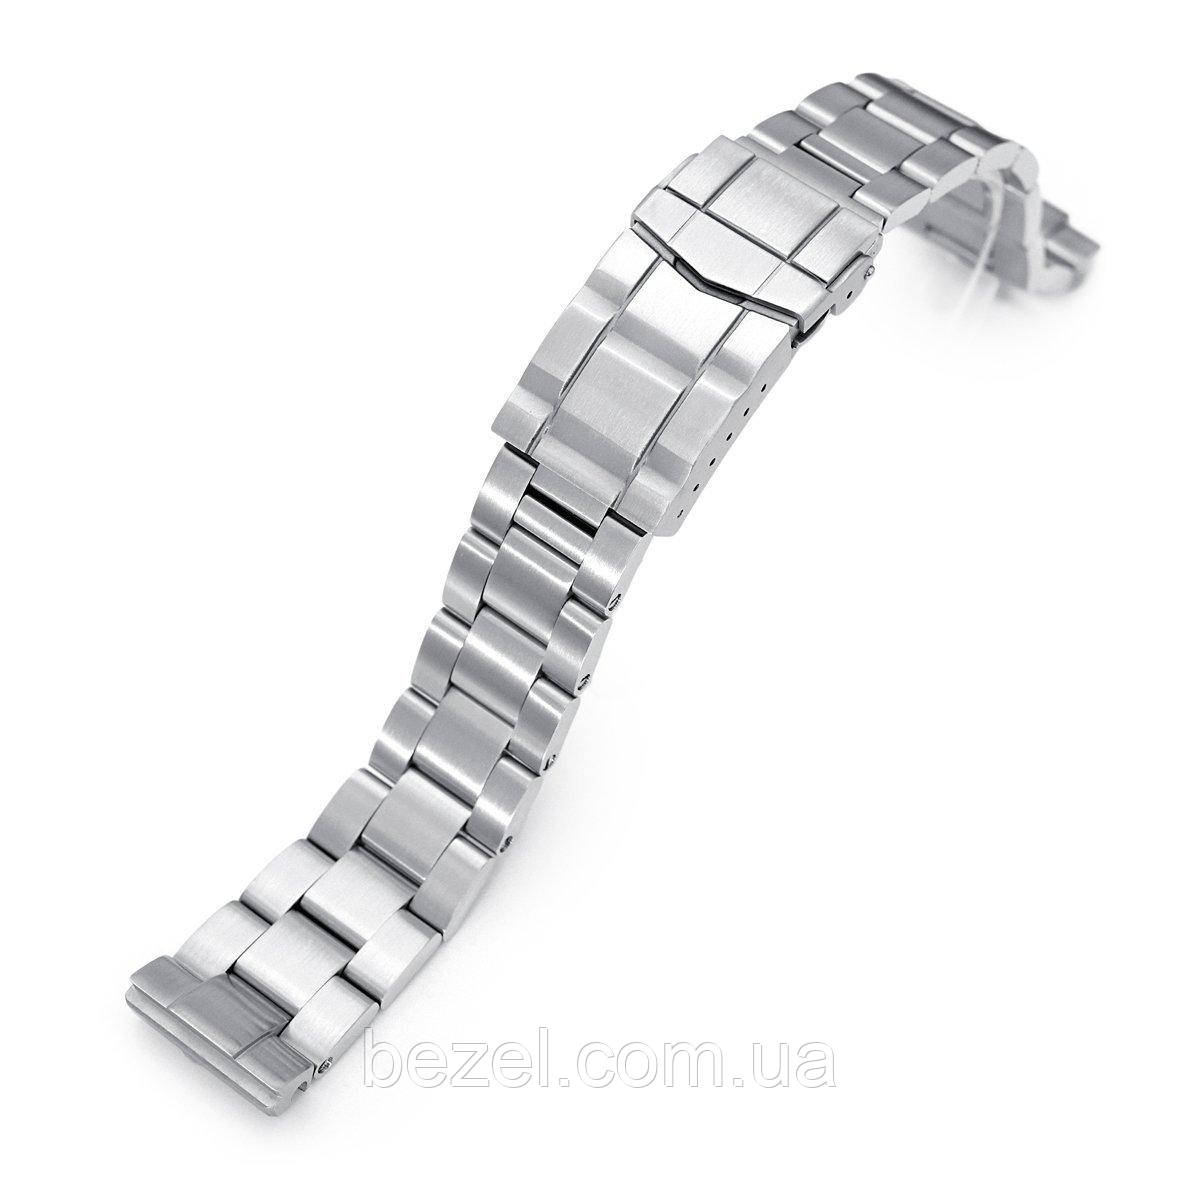 20mm Super 3D Oyster 316L Stainless Steel Watch Bracelet for Seiko SBDC053 aka modern 62MAS, Submariner Clasp, Brushed